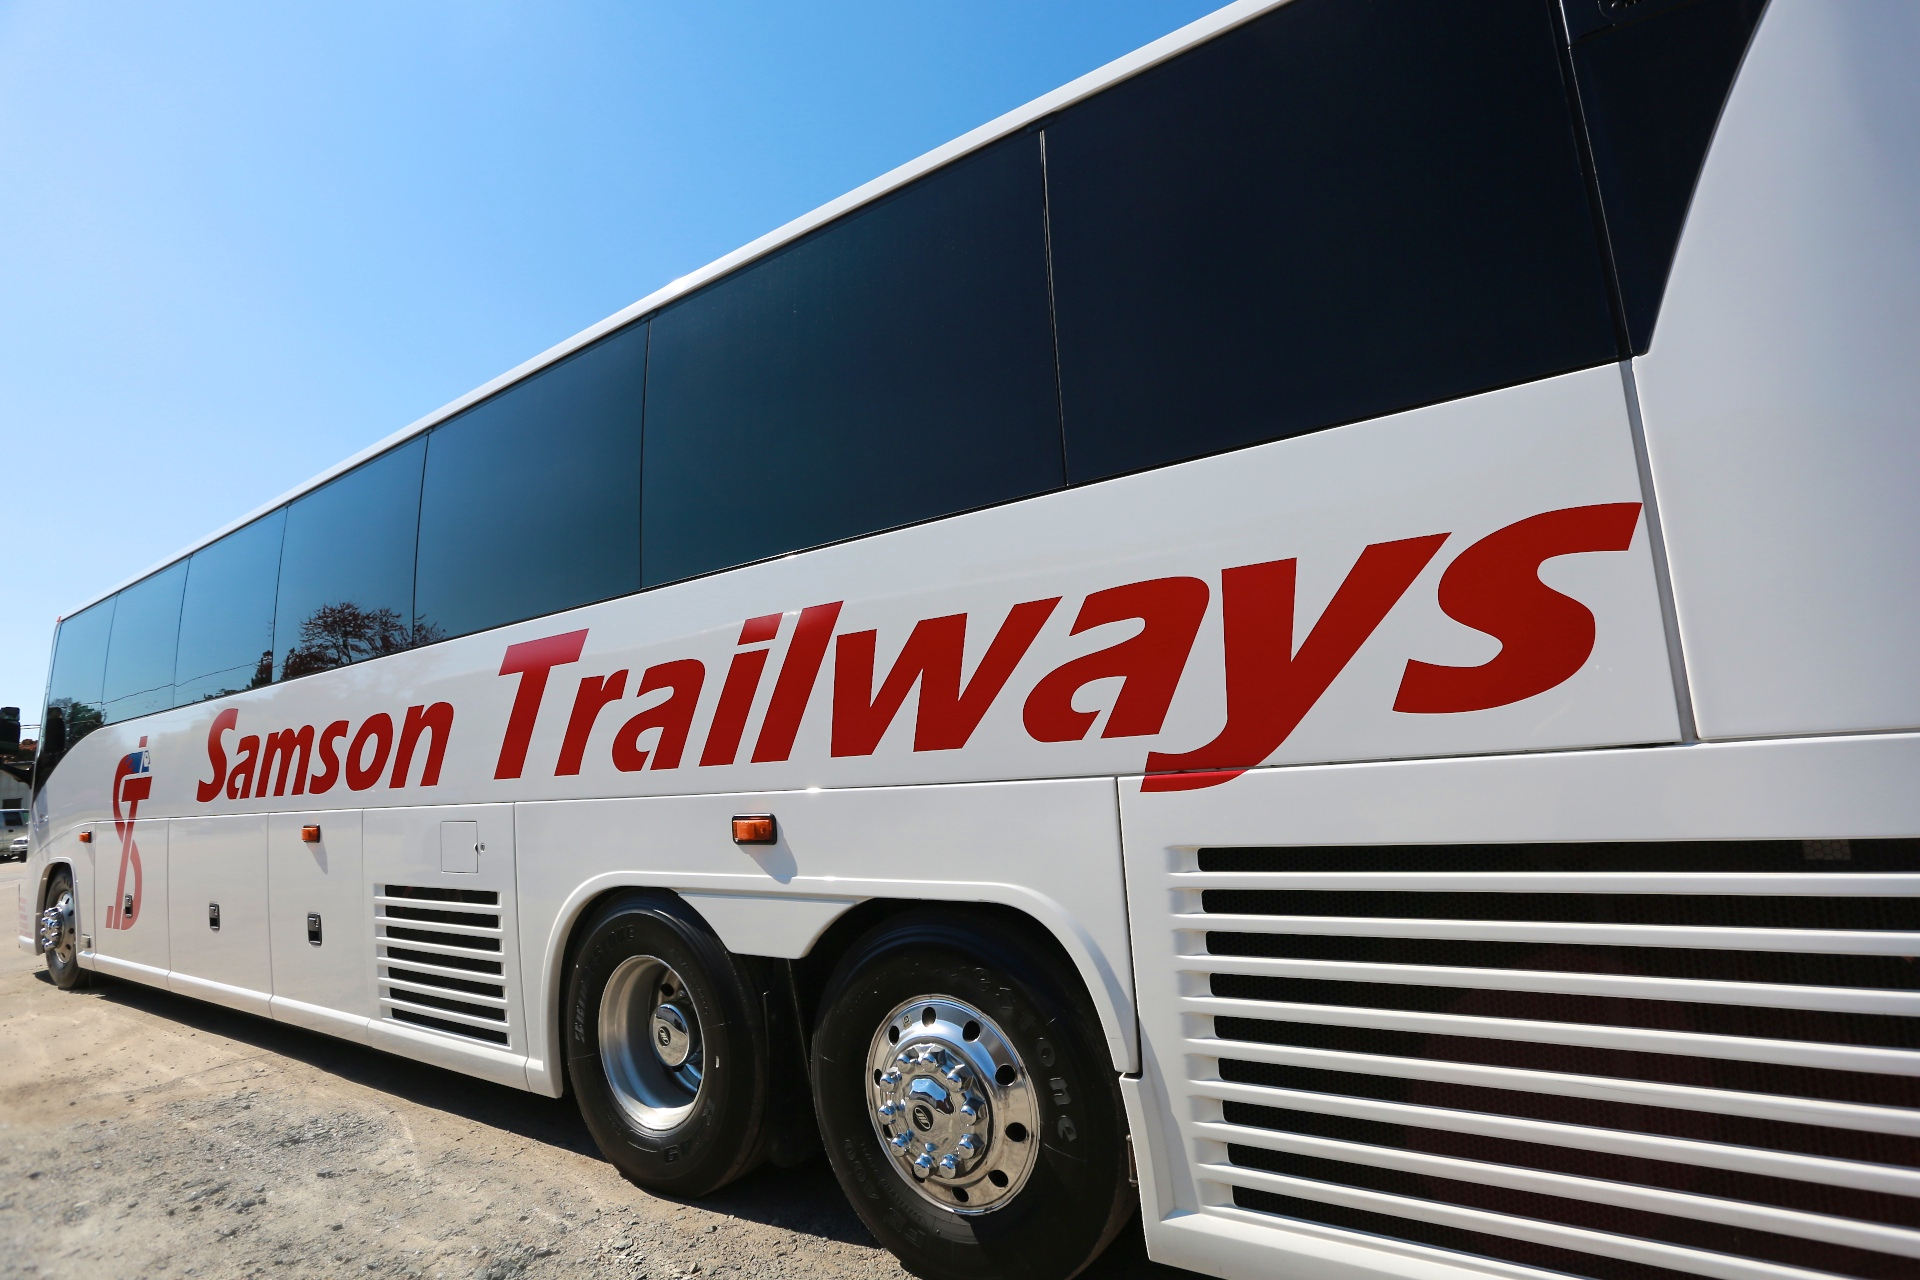 Samson Trailways Luxury Bus Charter